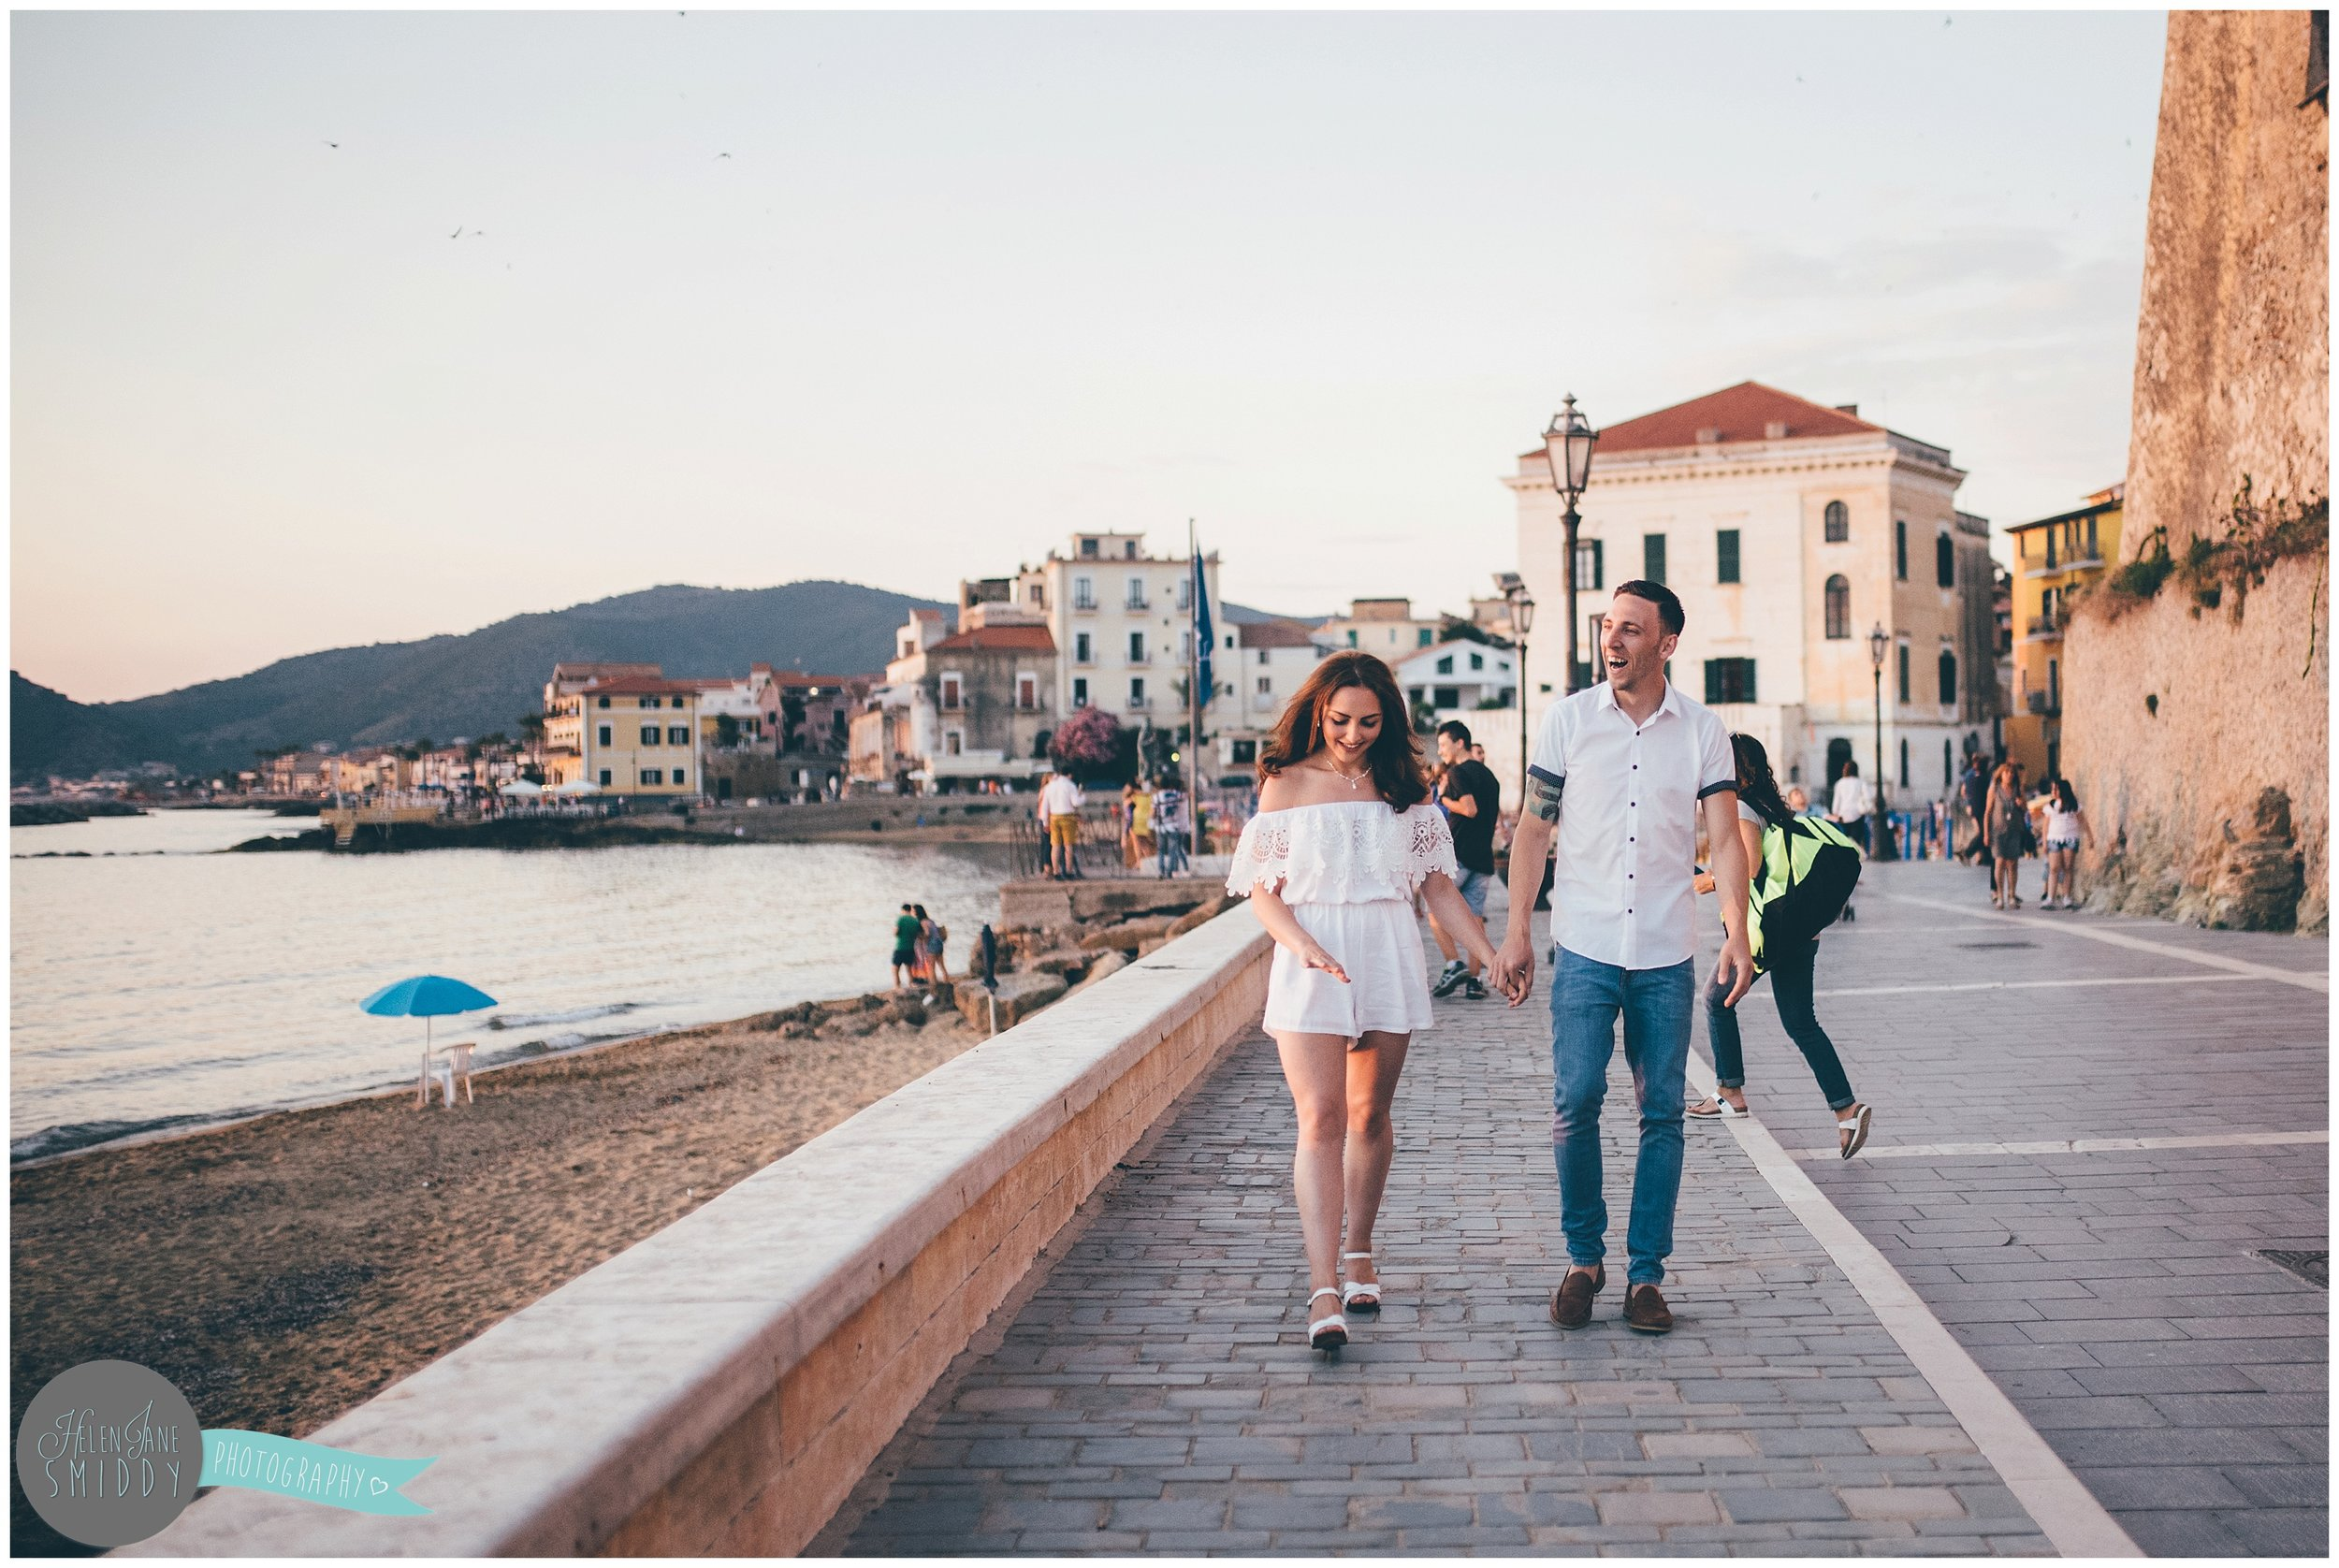 The young couple stroll through the rustic streets during their Engagement photoshoot in Santa Maria Di Castellabate, Italy.